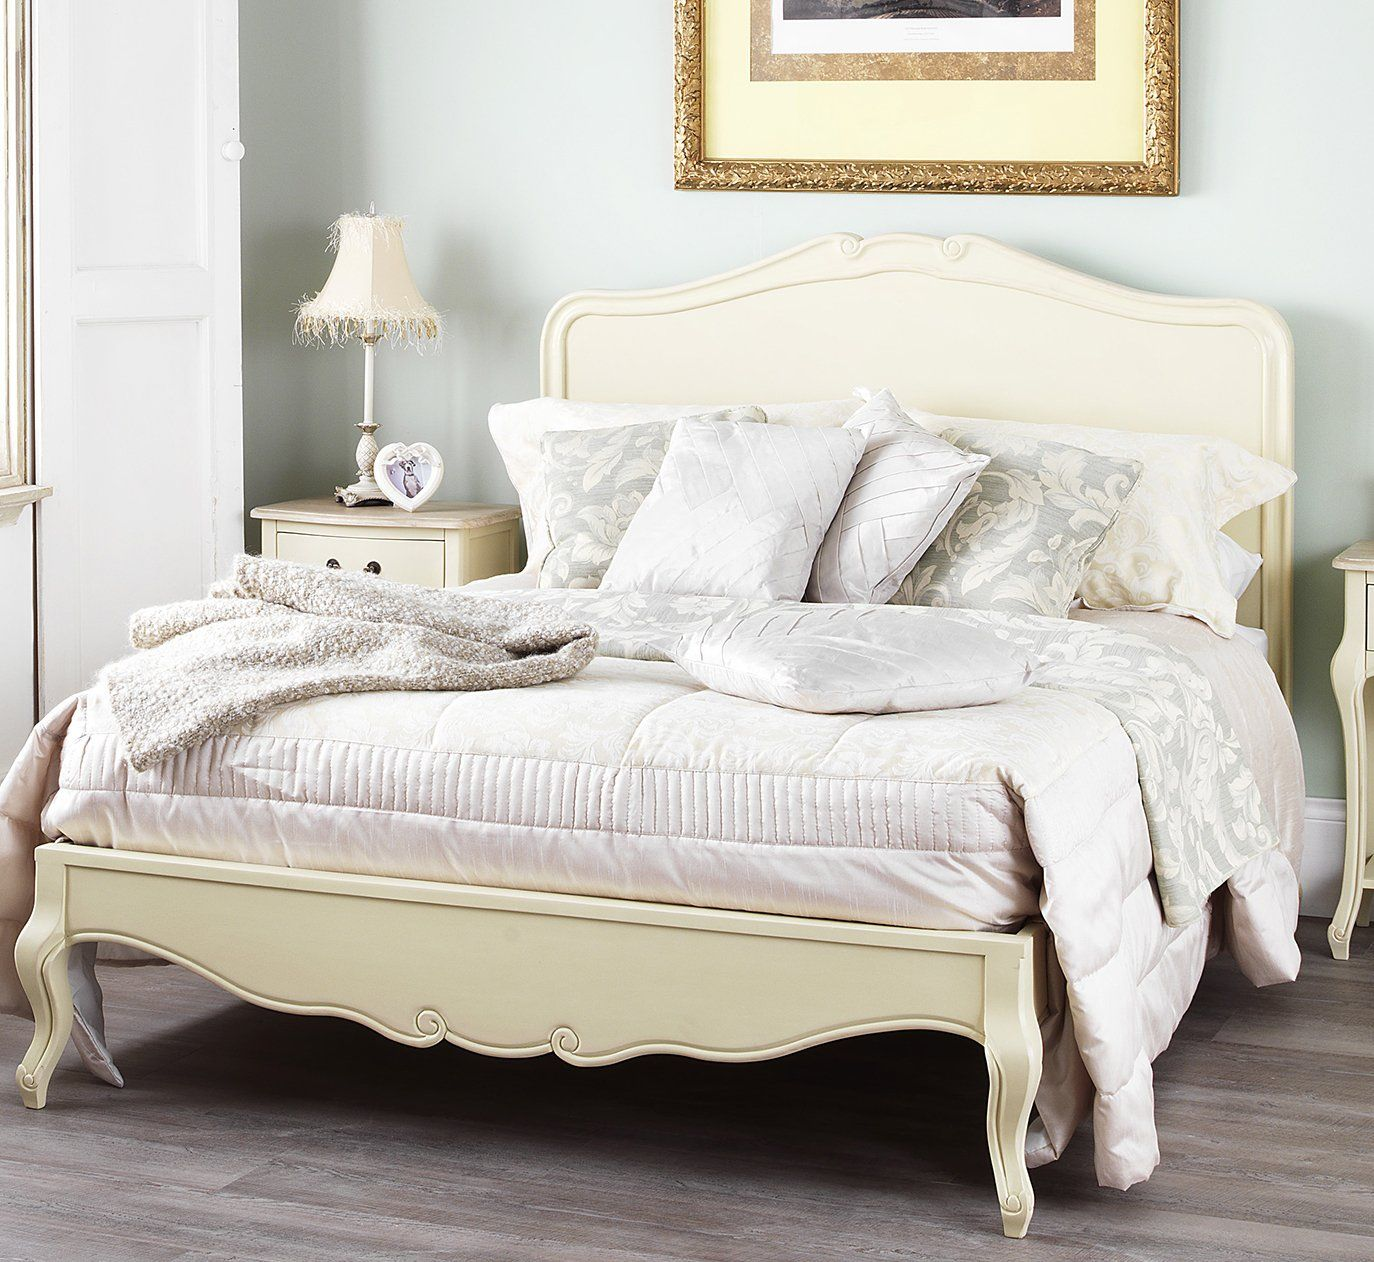 Shabby Chic Champagne 5ft King Bed with wooden headboard